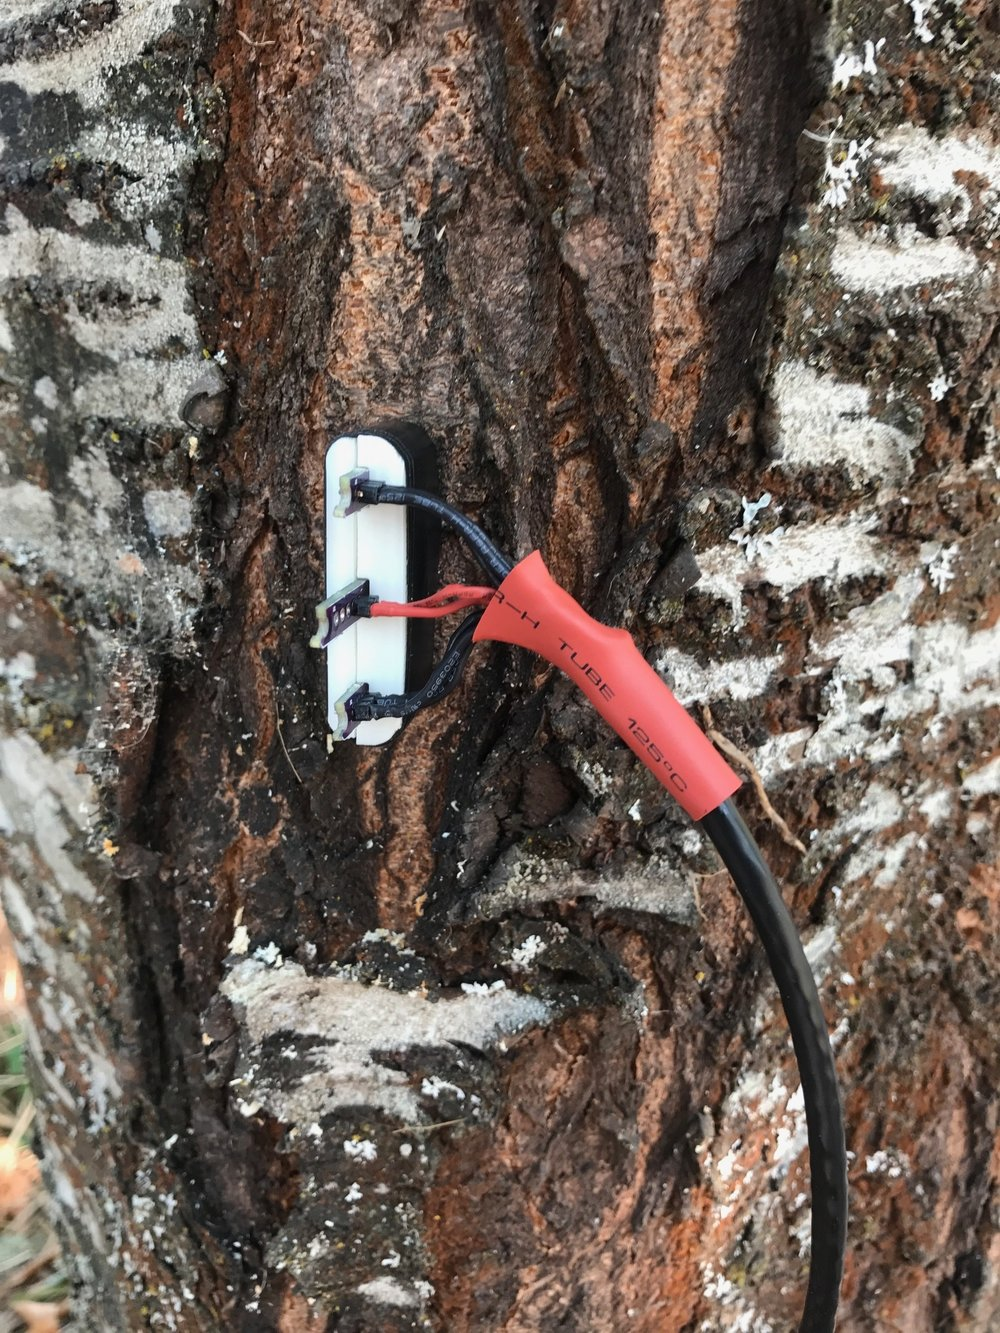 Our HRM probe prototype in the wild cherry tree! (8/16/2018)